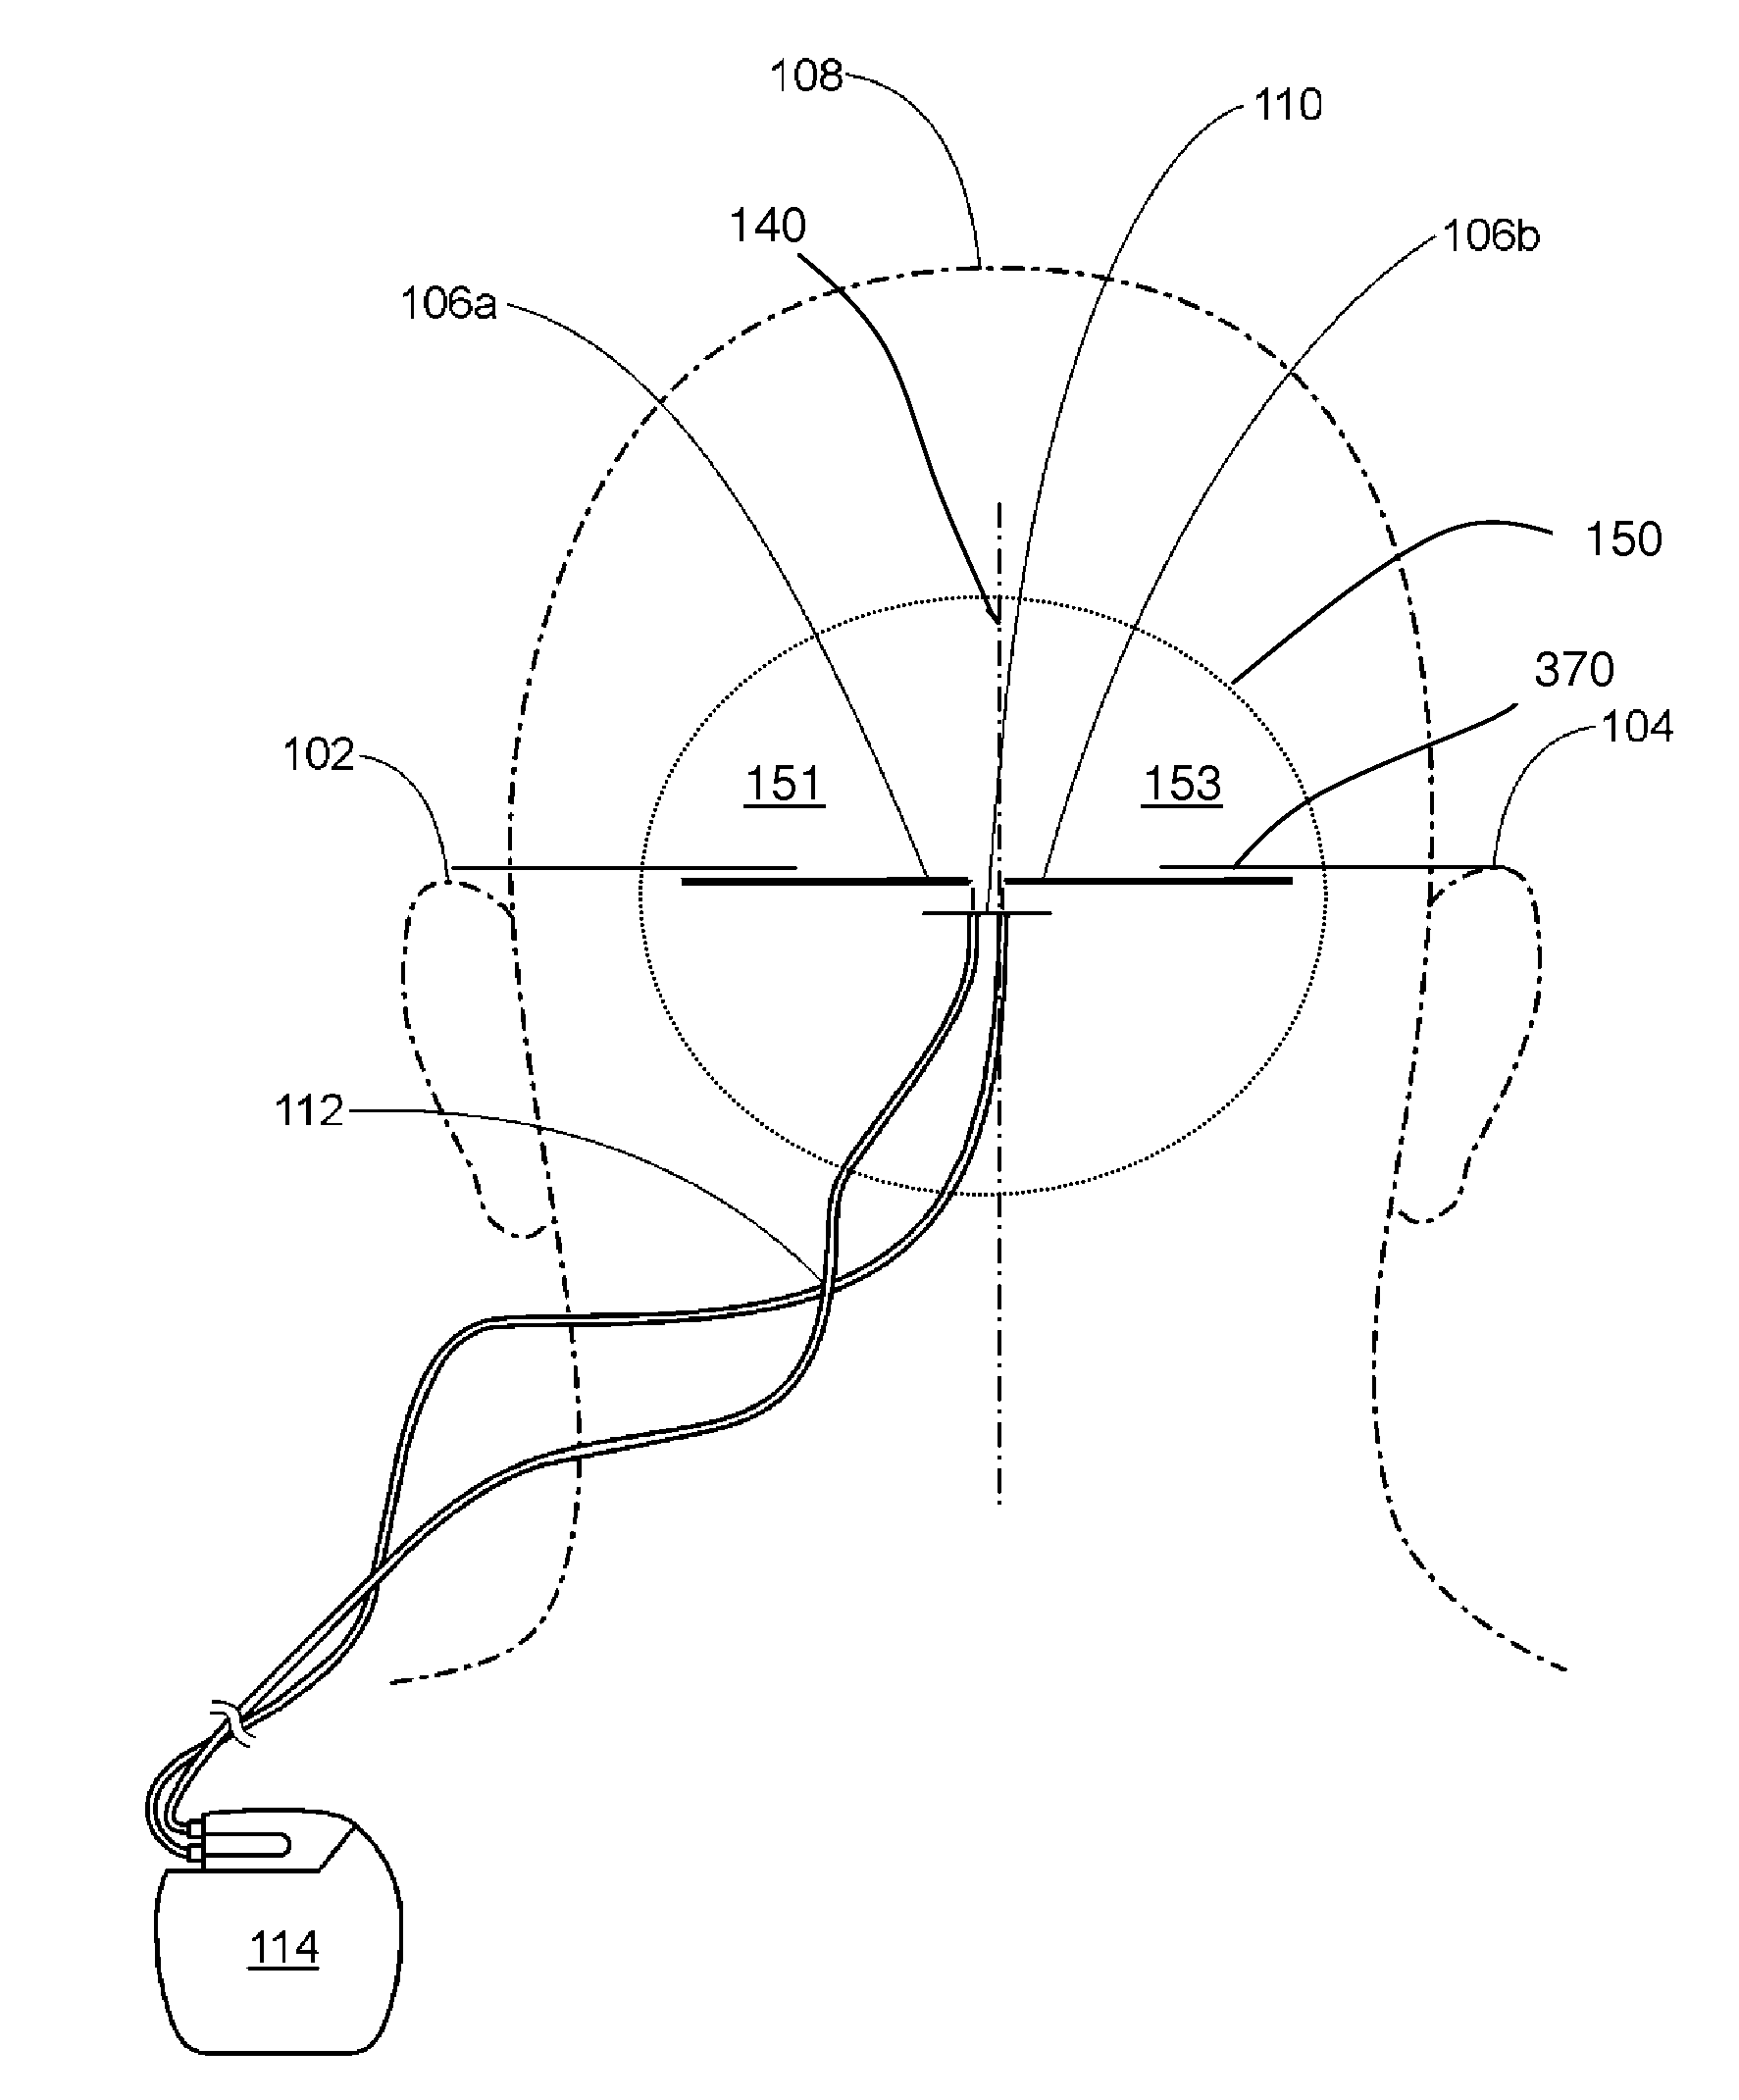 Diagram Of Brain And Pain